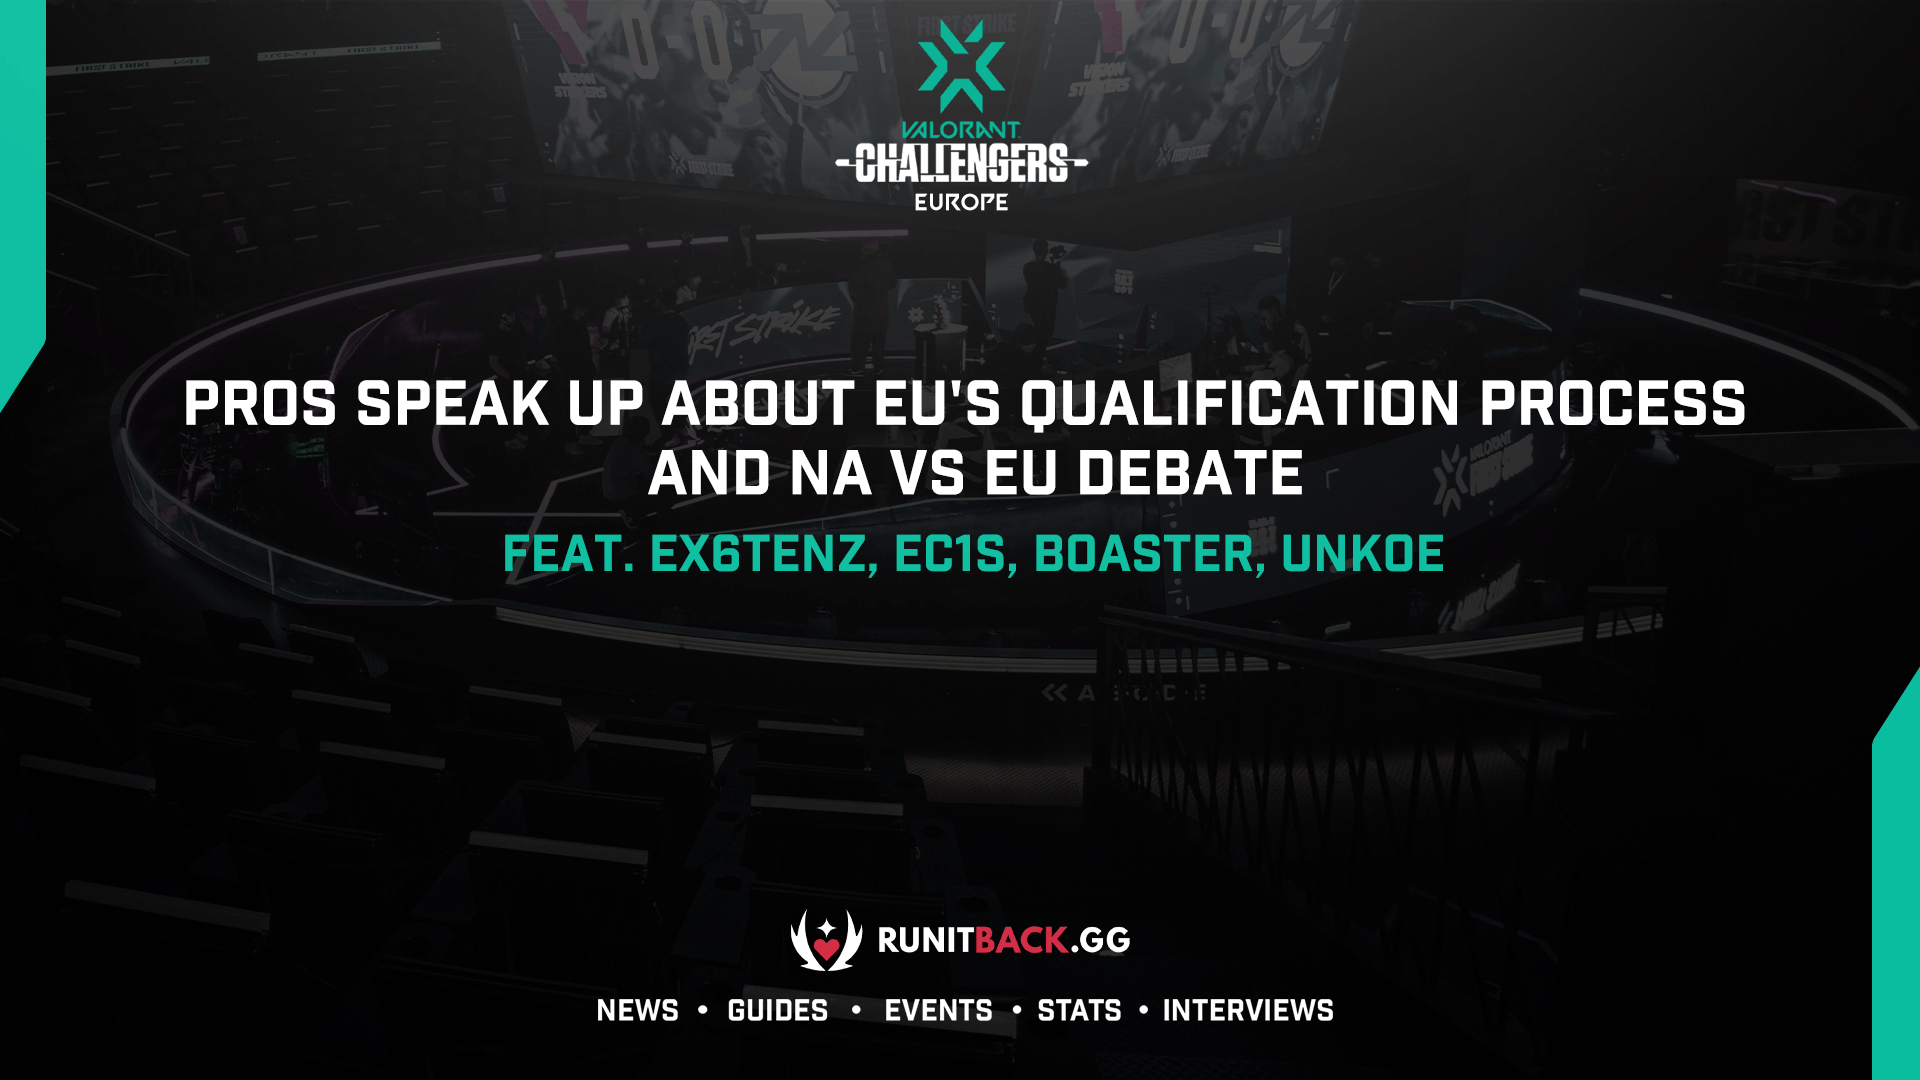 Pros speak up about EU's qualification process and chime in on NA vs EU debate feat. Ex6TenZ, ec1s, Boaster, and uNKOE (Exclusive)